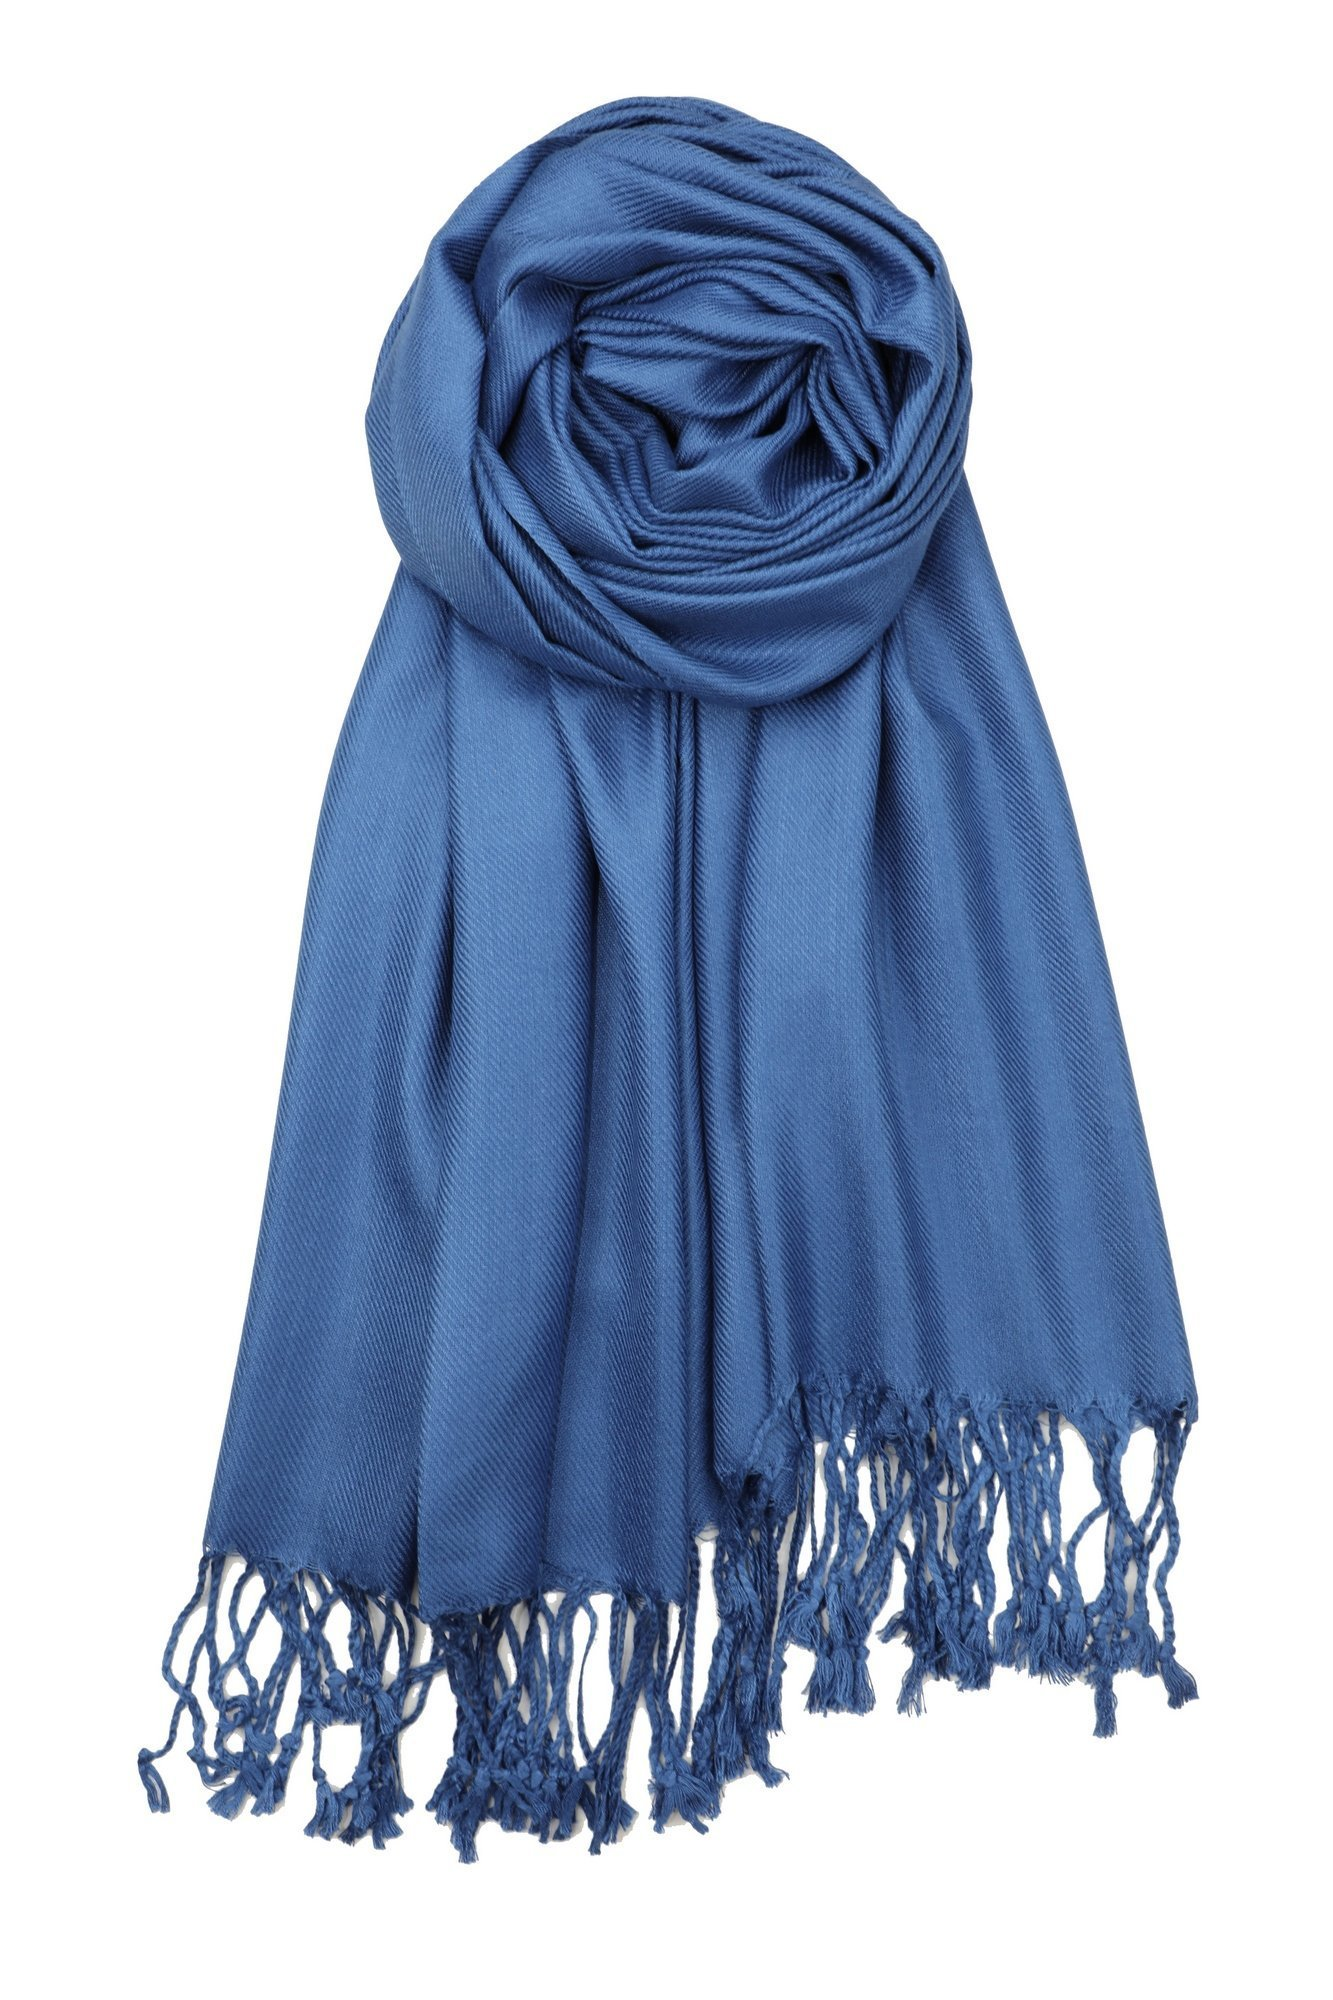 Achillea Large Soft Silky Pashmina Shawl Wrap Scarf in Solid Colors (Cobalt Blue)